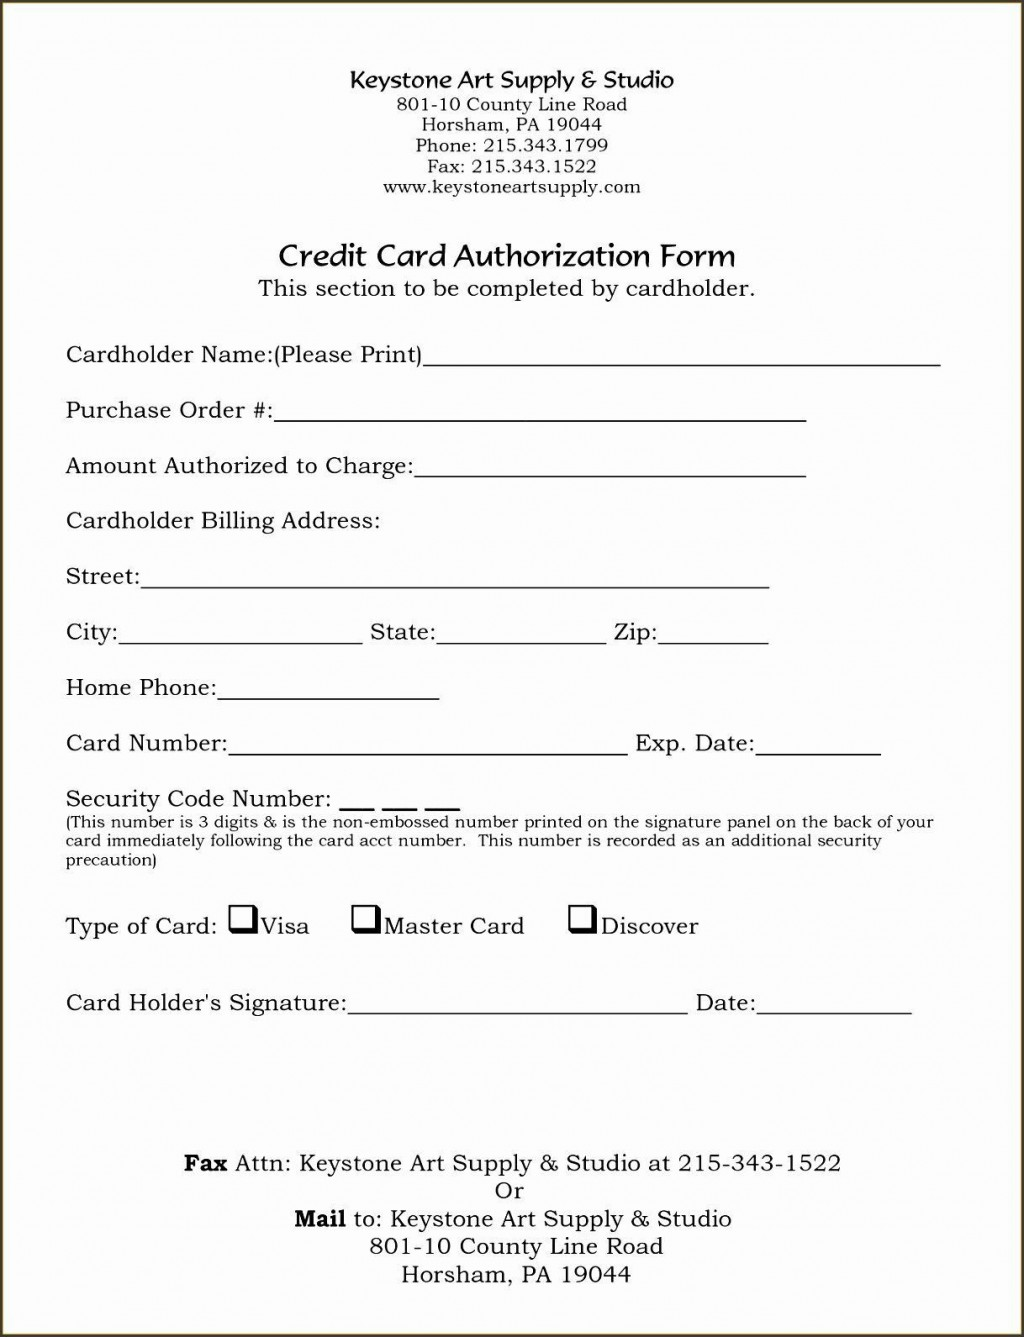 004 Shocking Credit Card Form Template Excel High Def  Authorization PaymentLarge